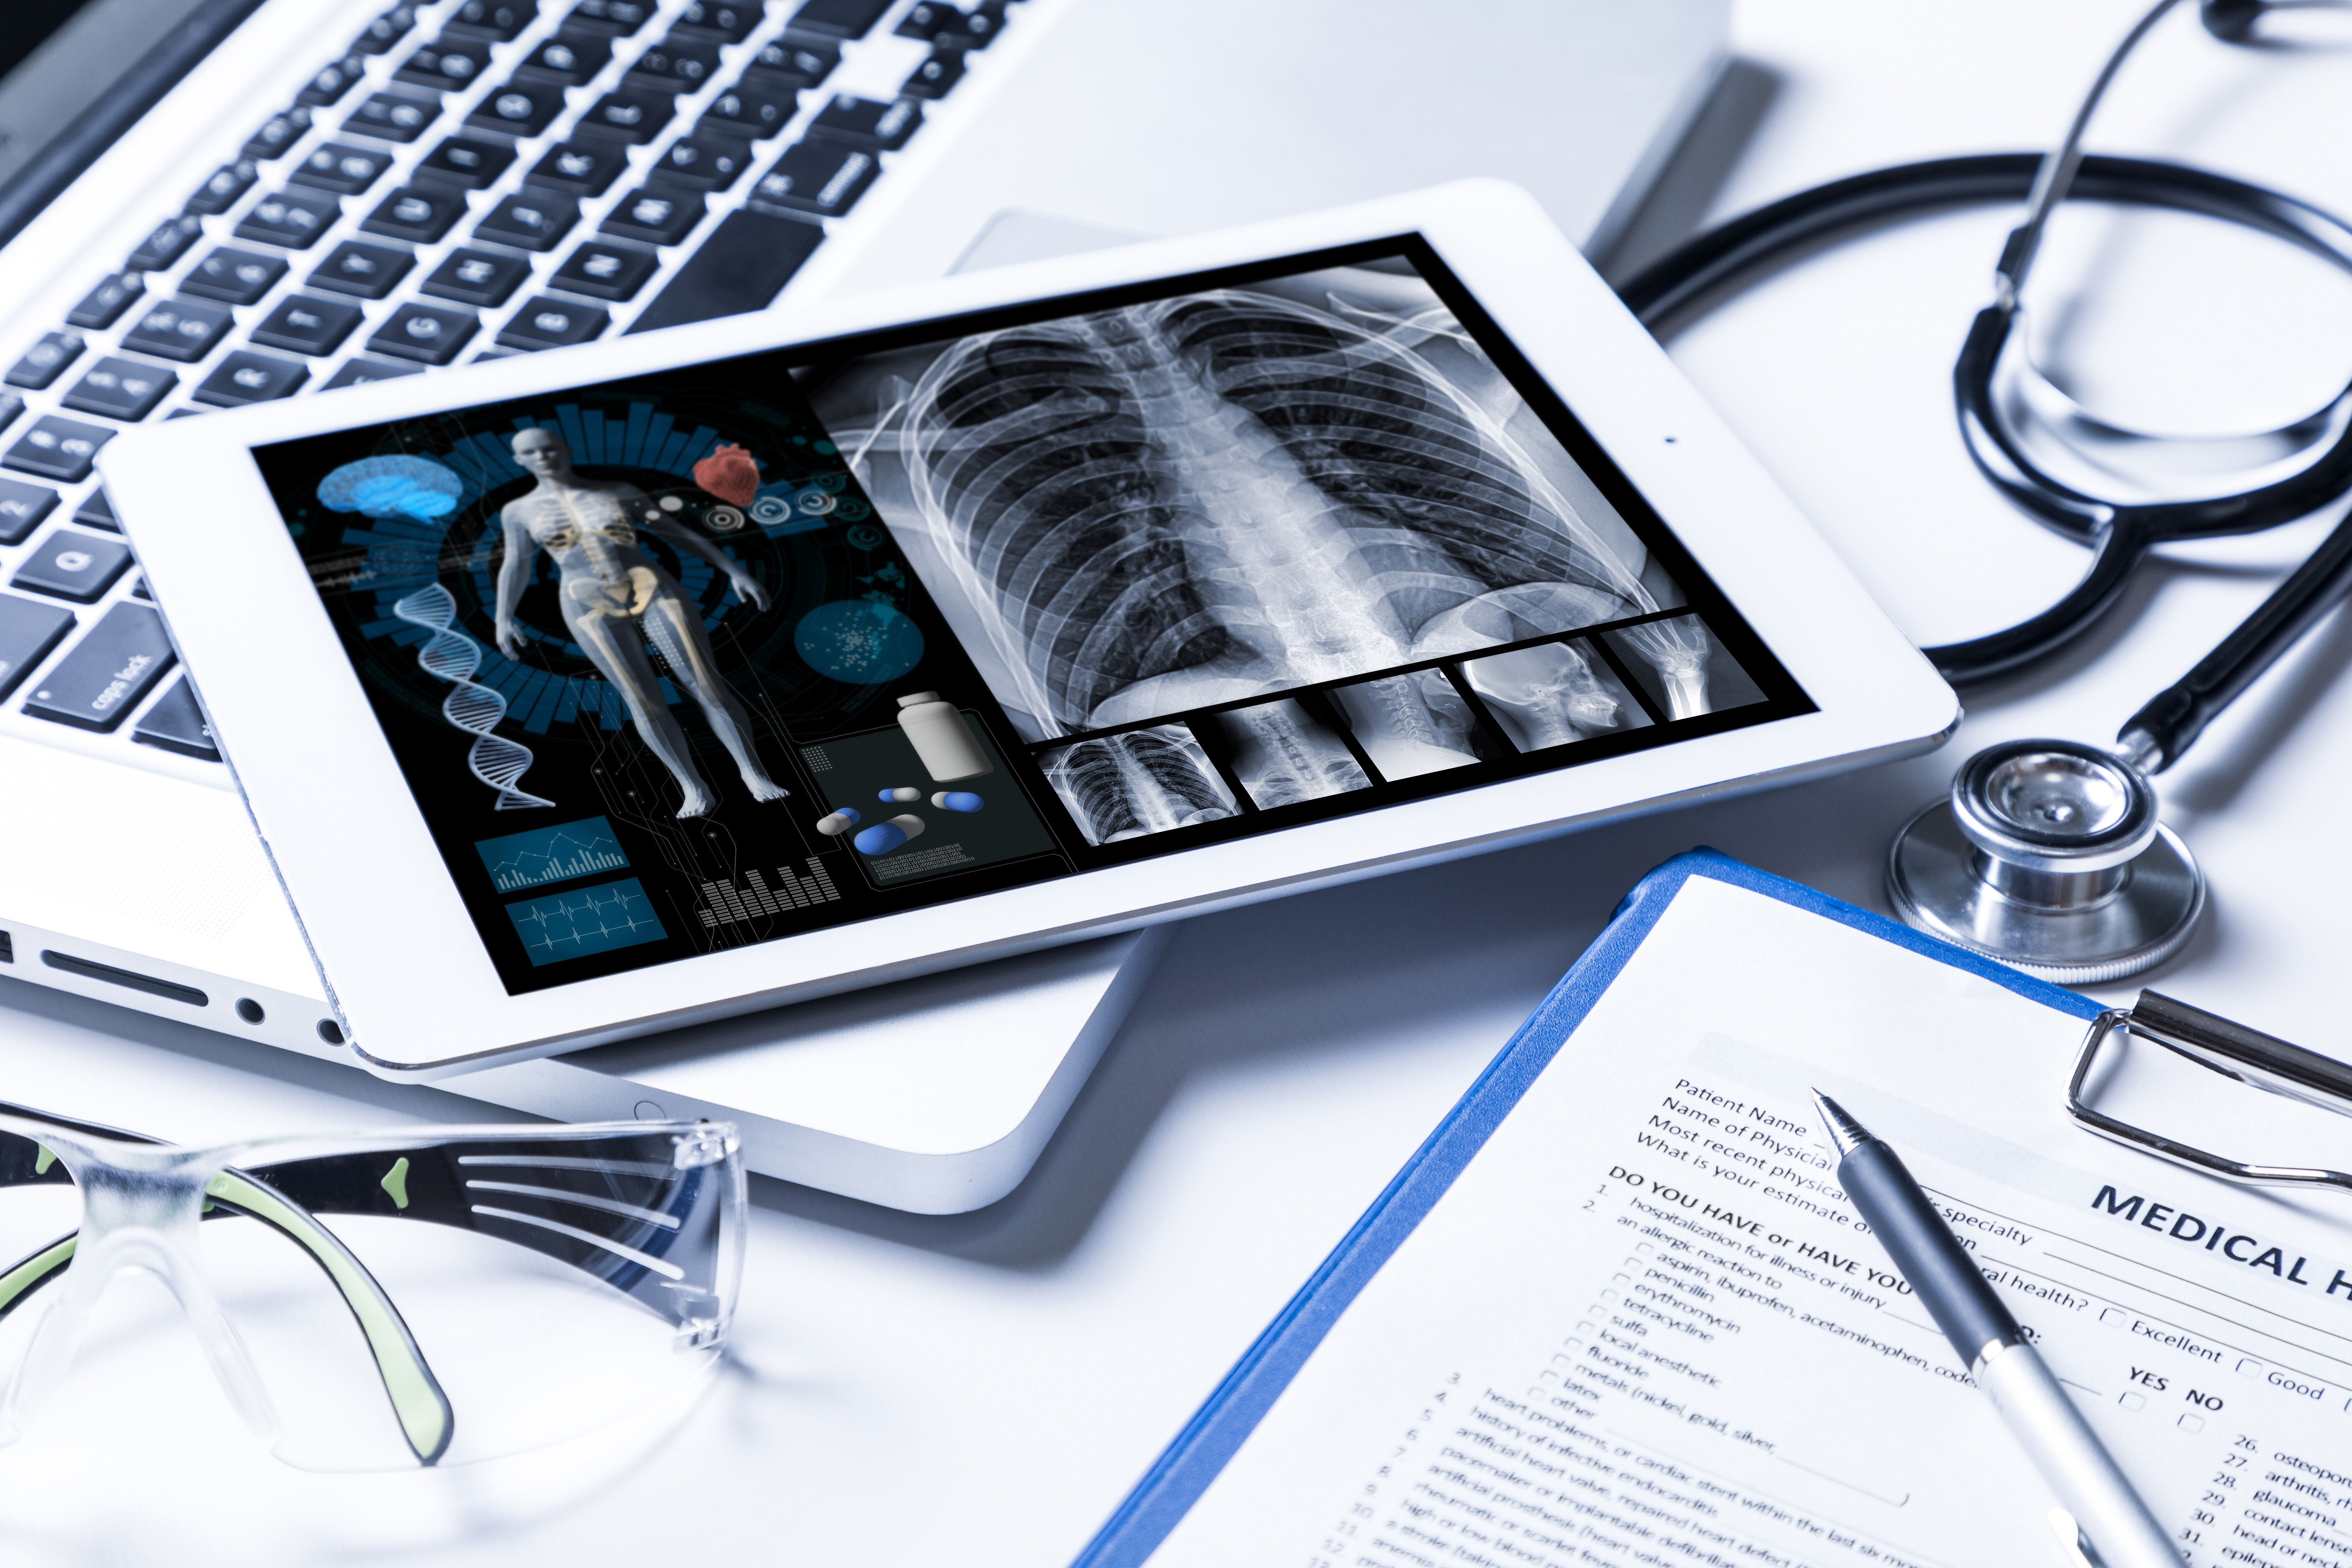 Transforming patient connectivity and data security in EMRs. Healthcare technology